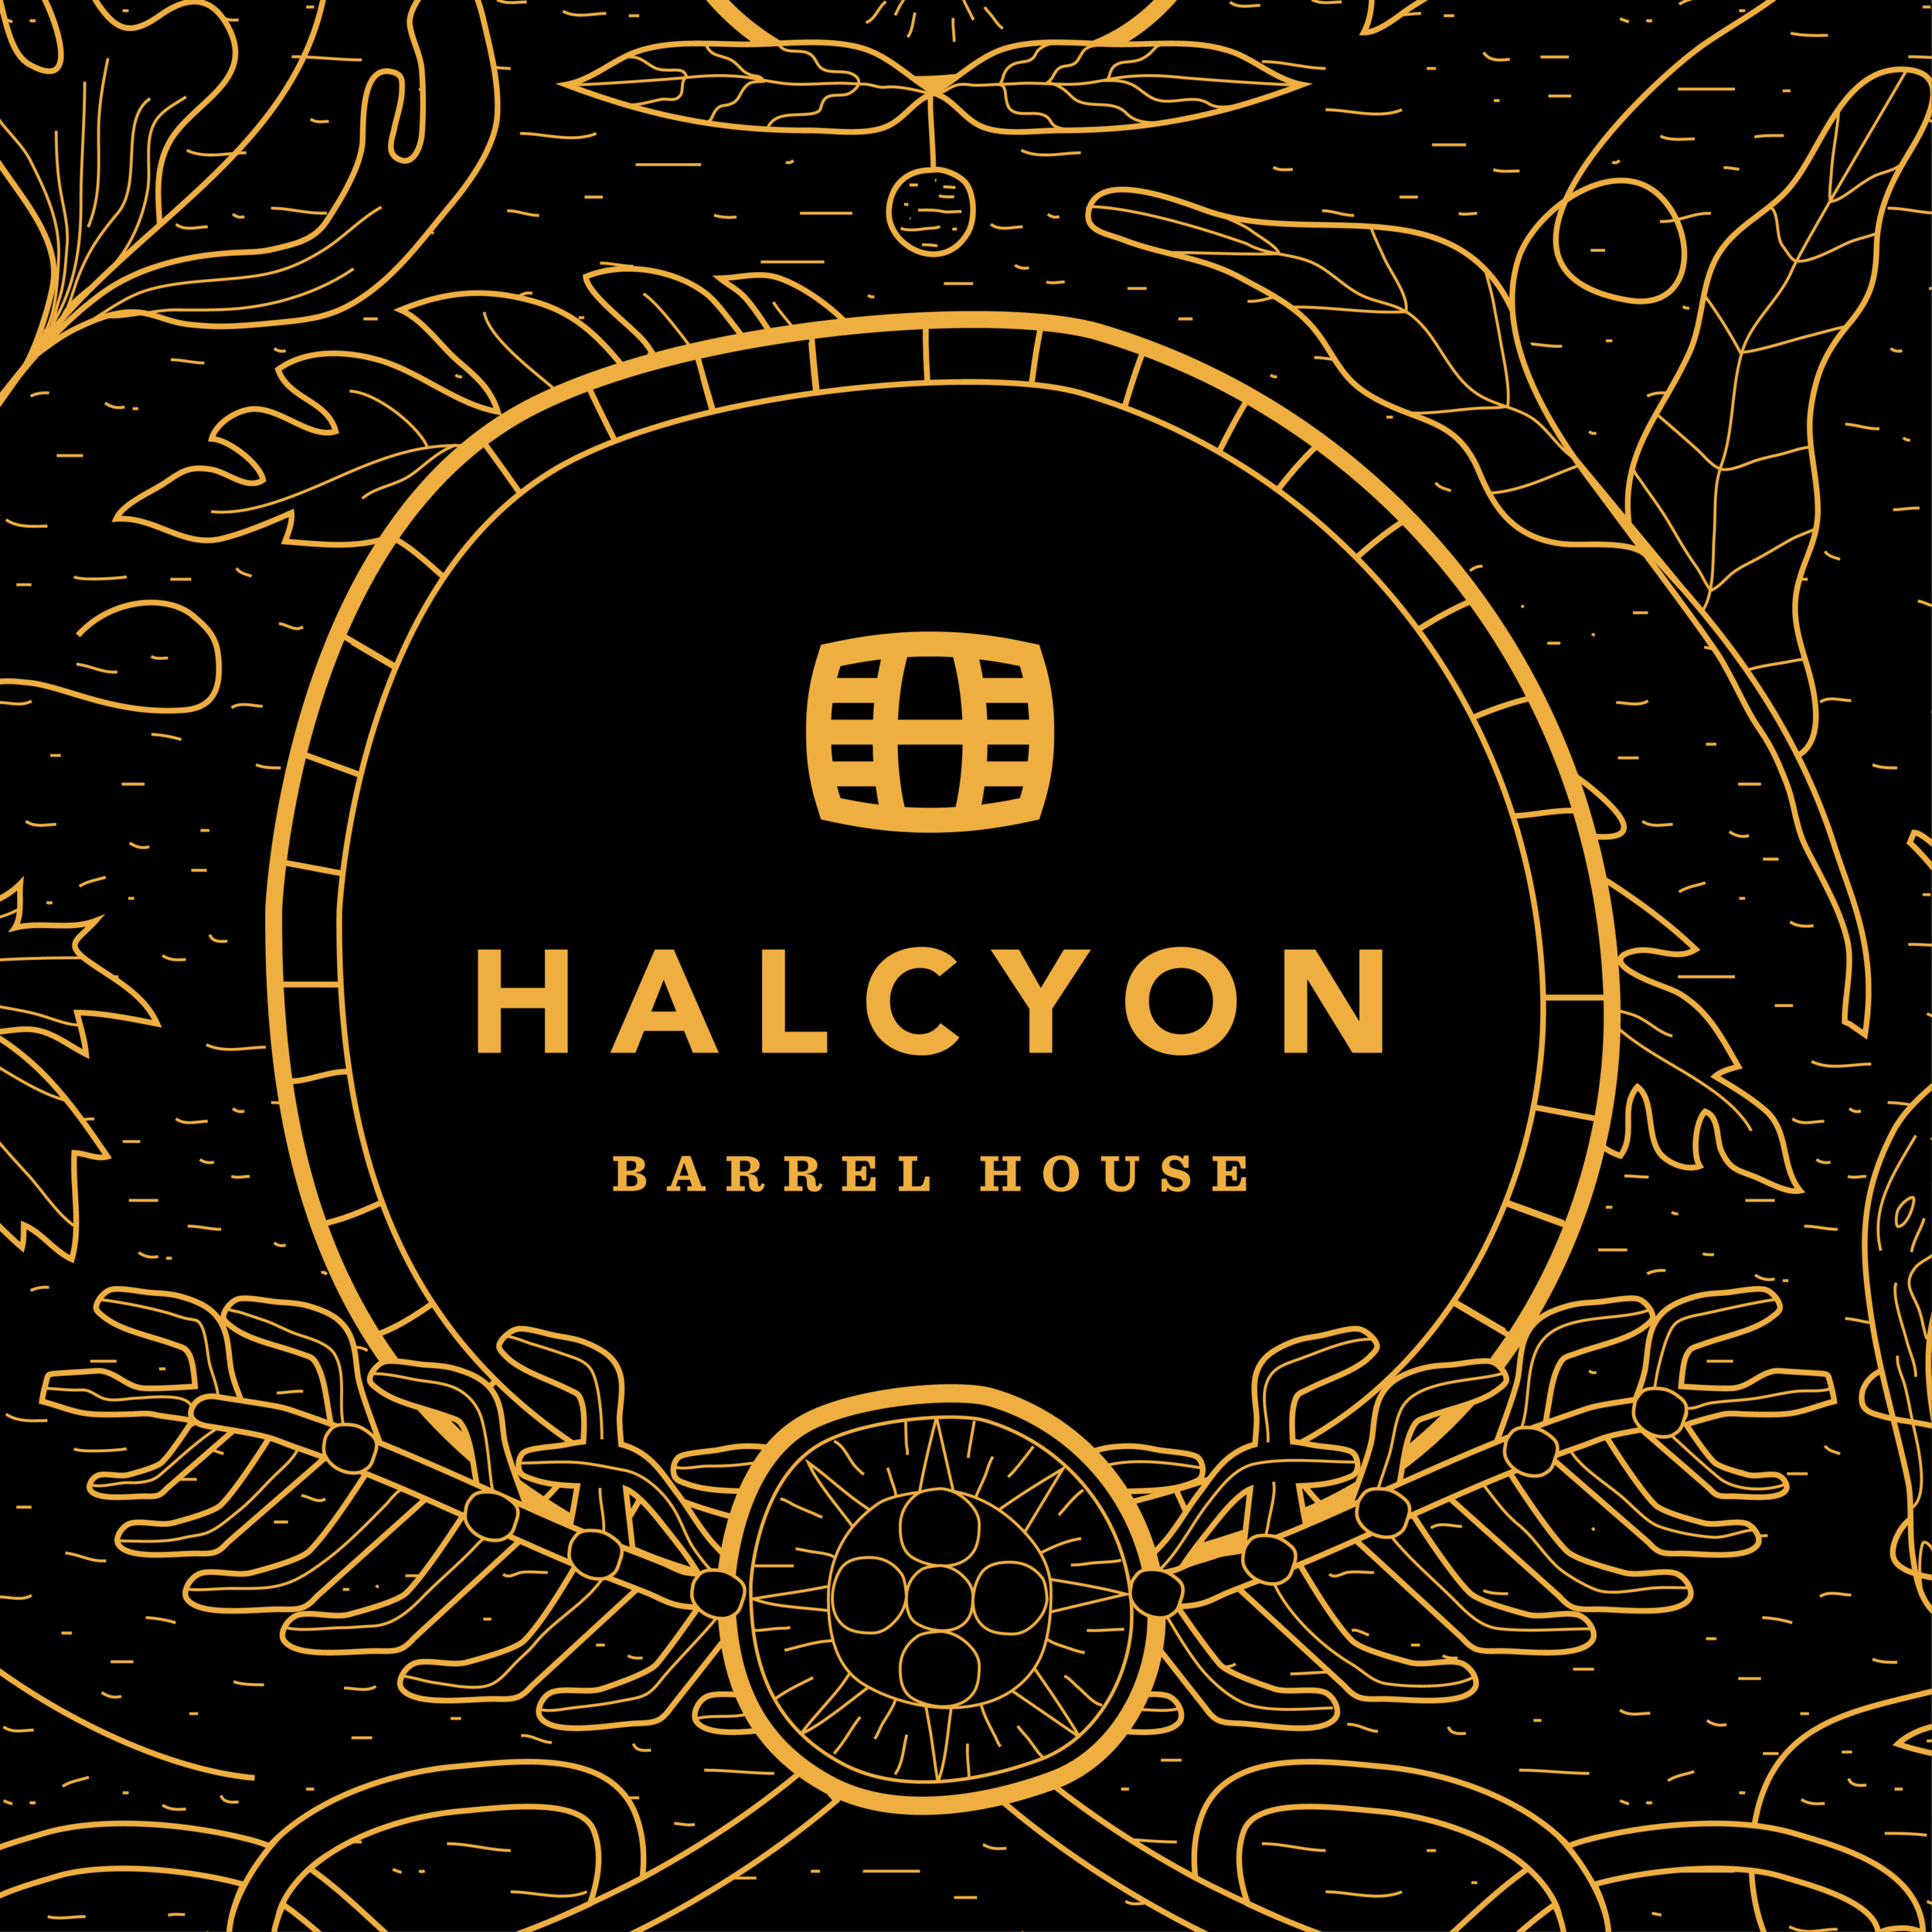 Halcyon-01.png